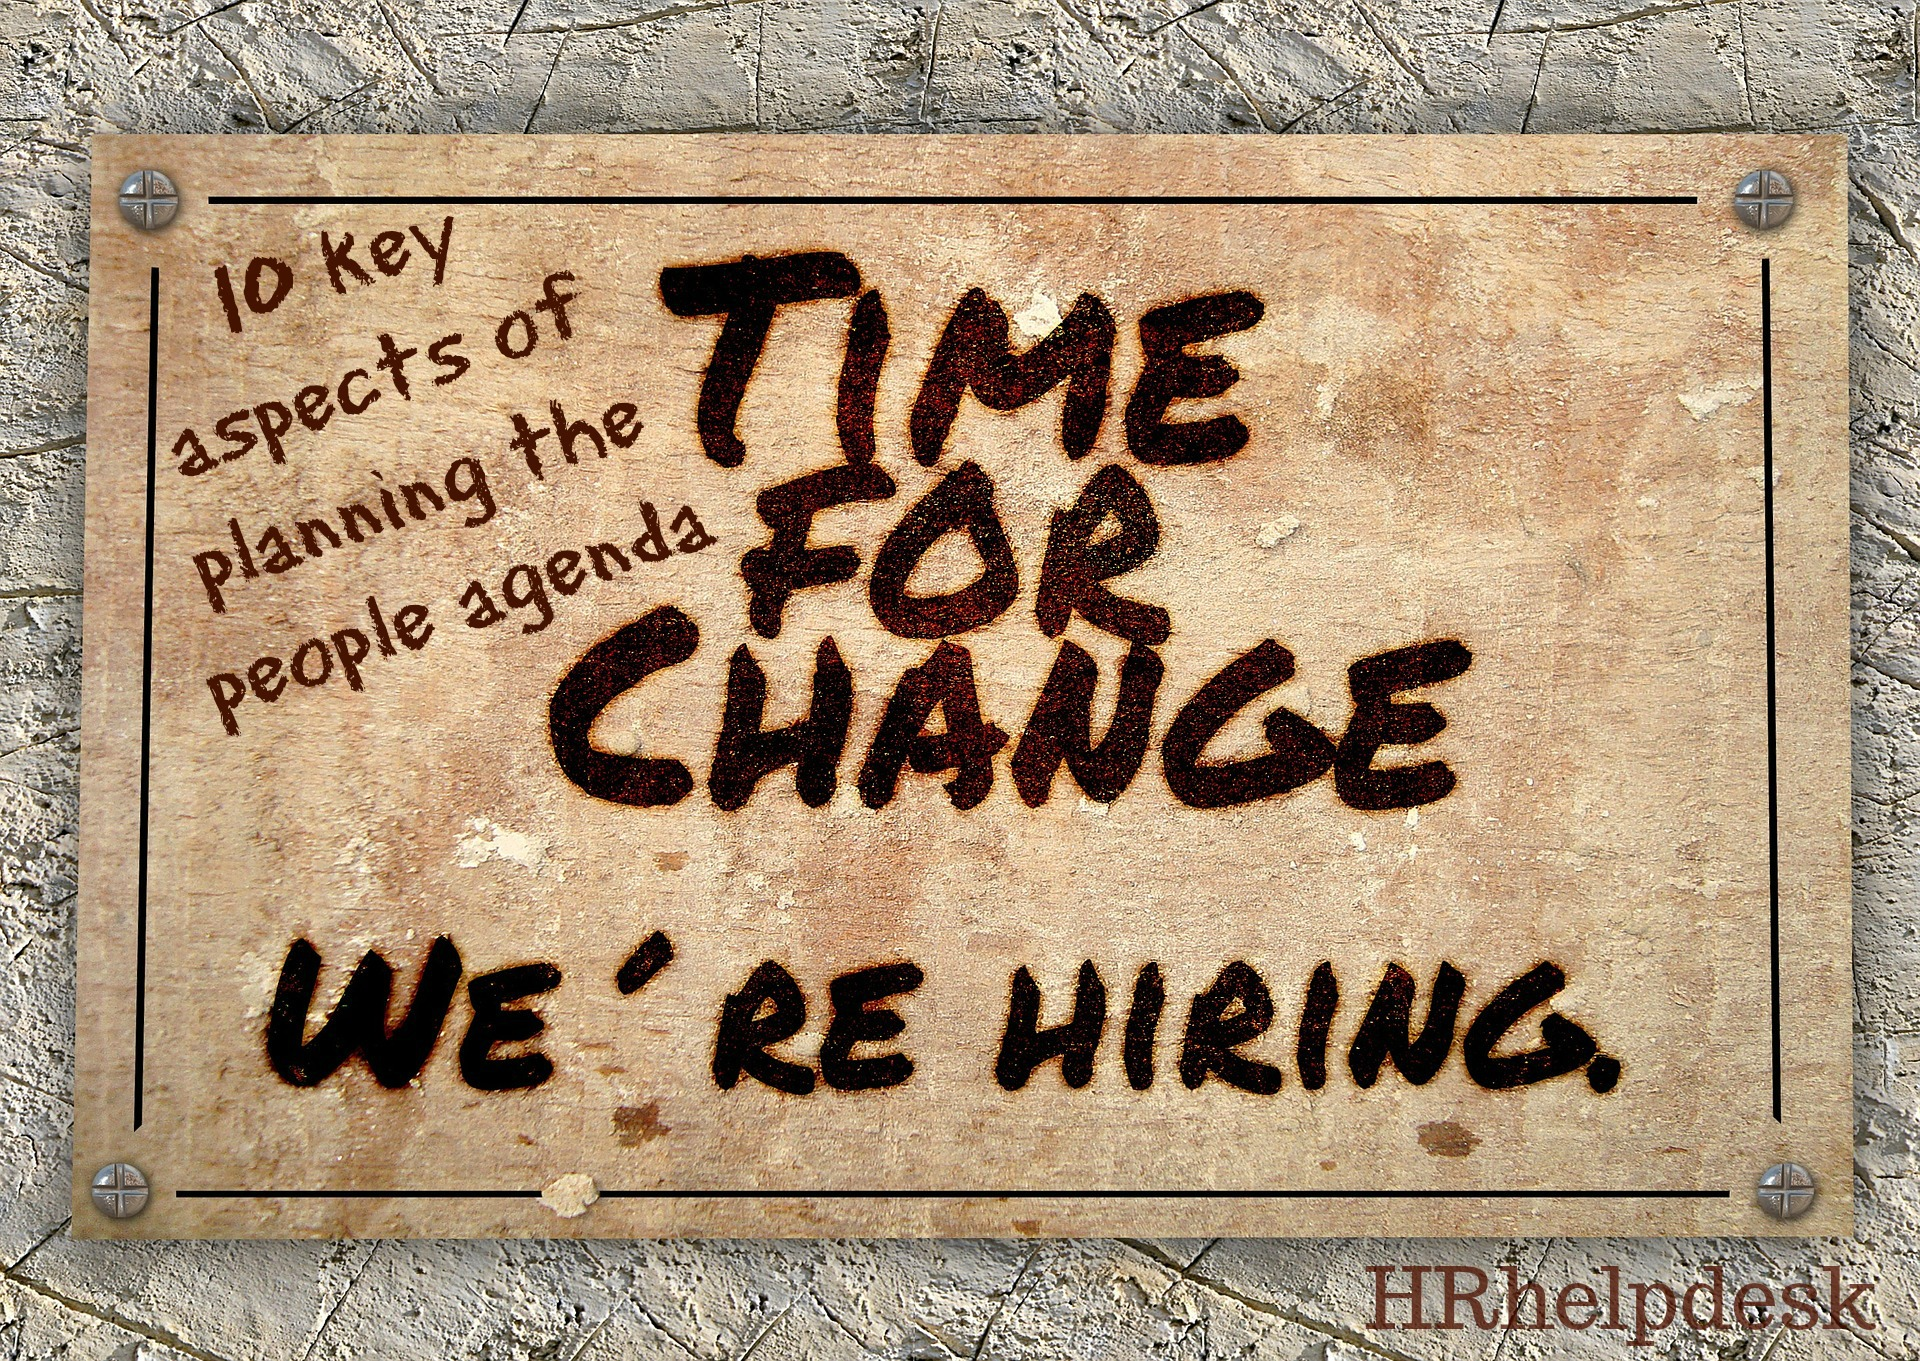 we are hiring hr consulting